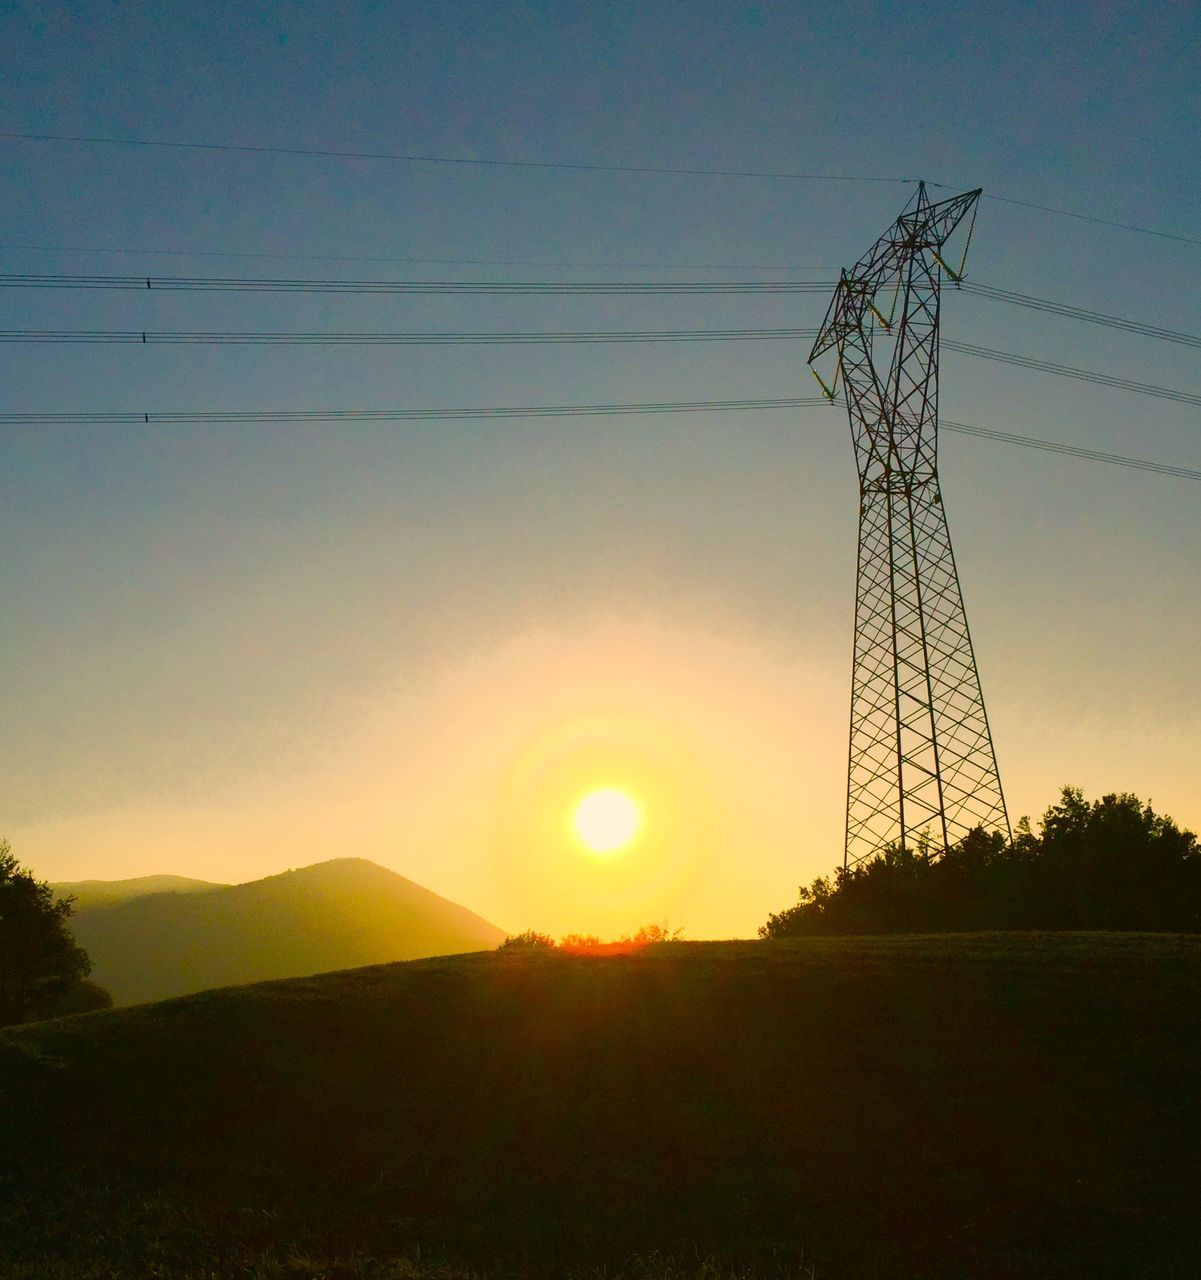 Low Angle View Of Electricity Pylon At Sunset